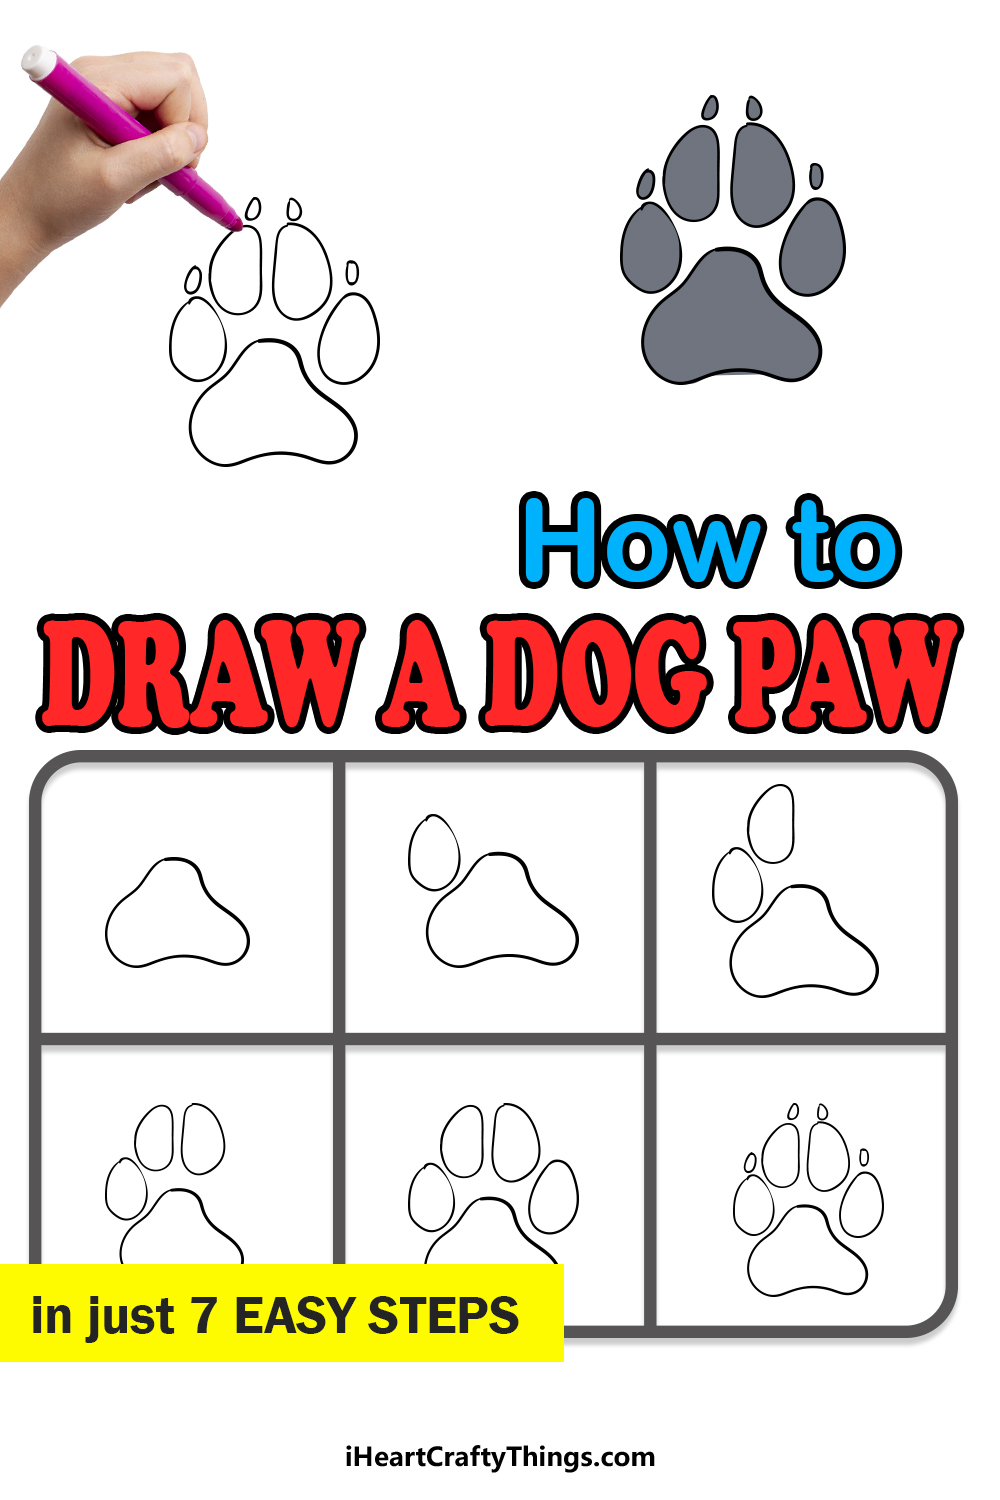 how to draw a dog paw in 7 easy steps